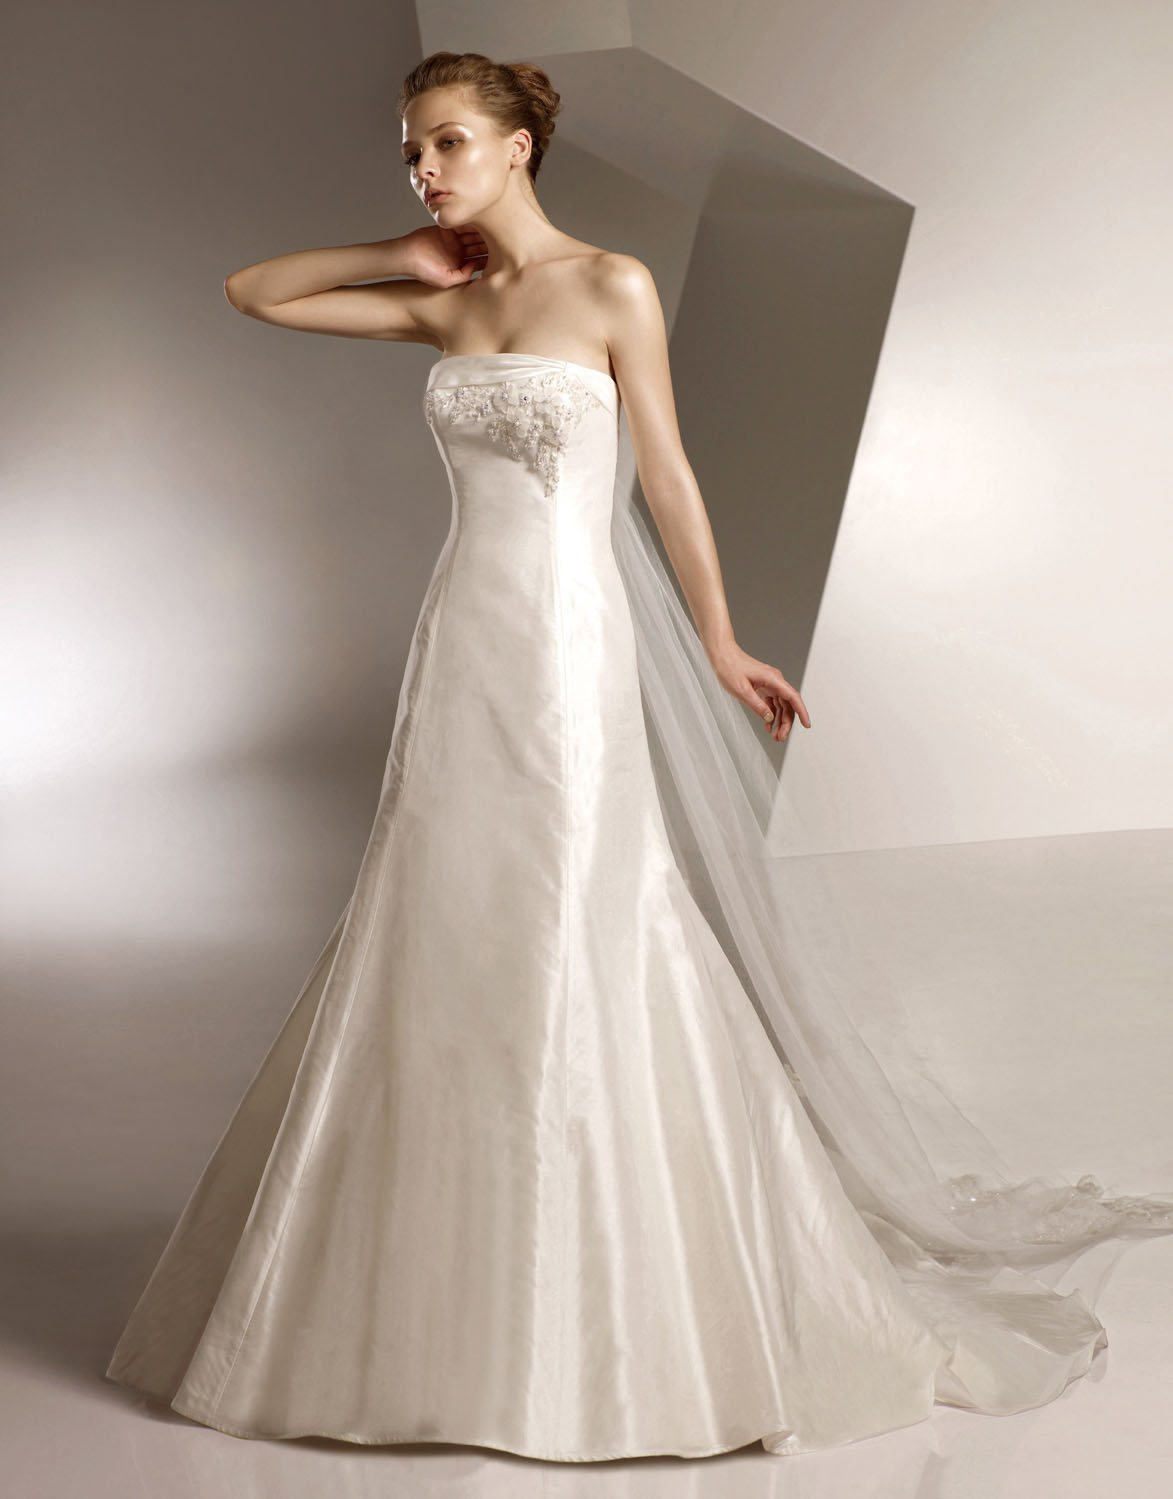 A-line Appliqued Beading Taffeta and Tuller Wedding Dress Bridal Gown